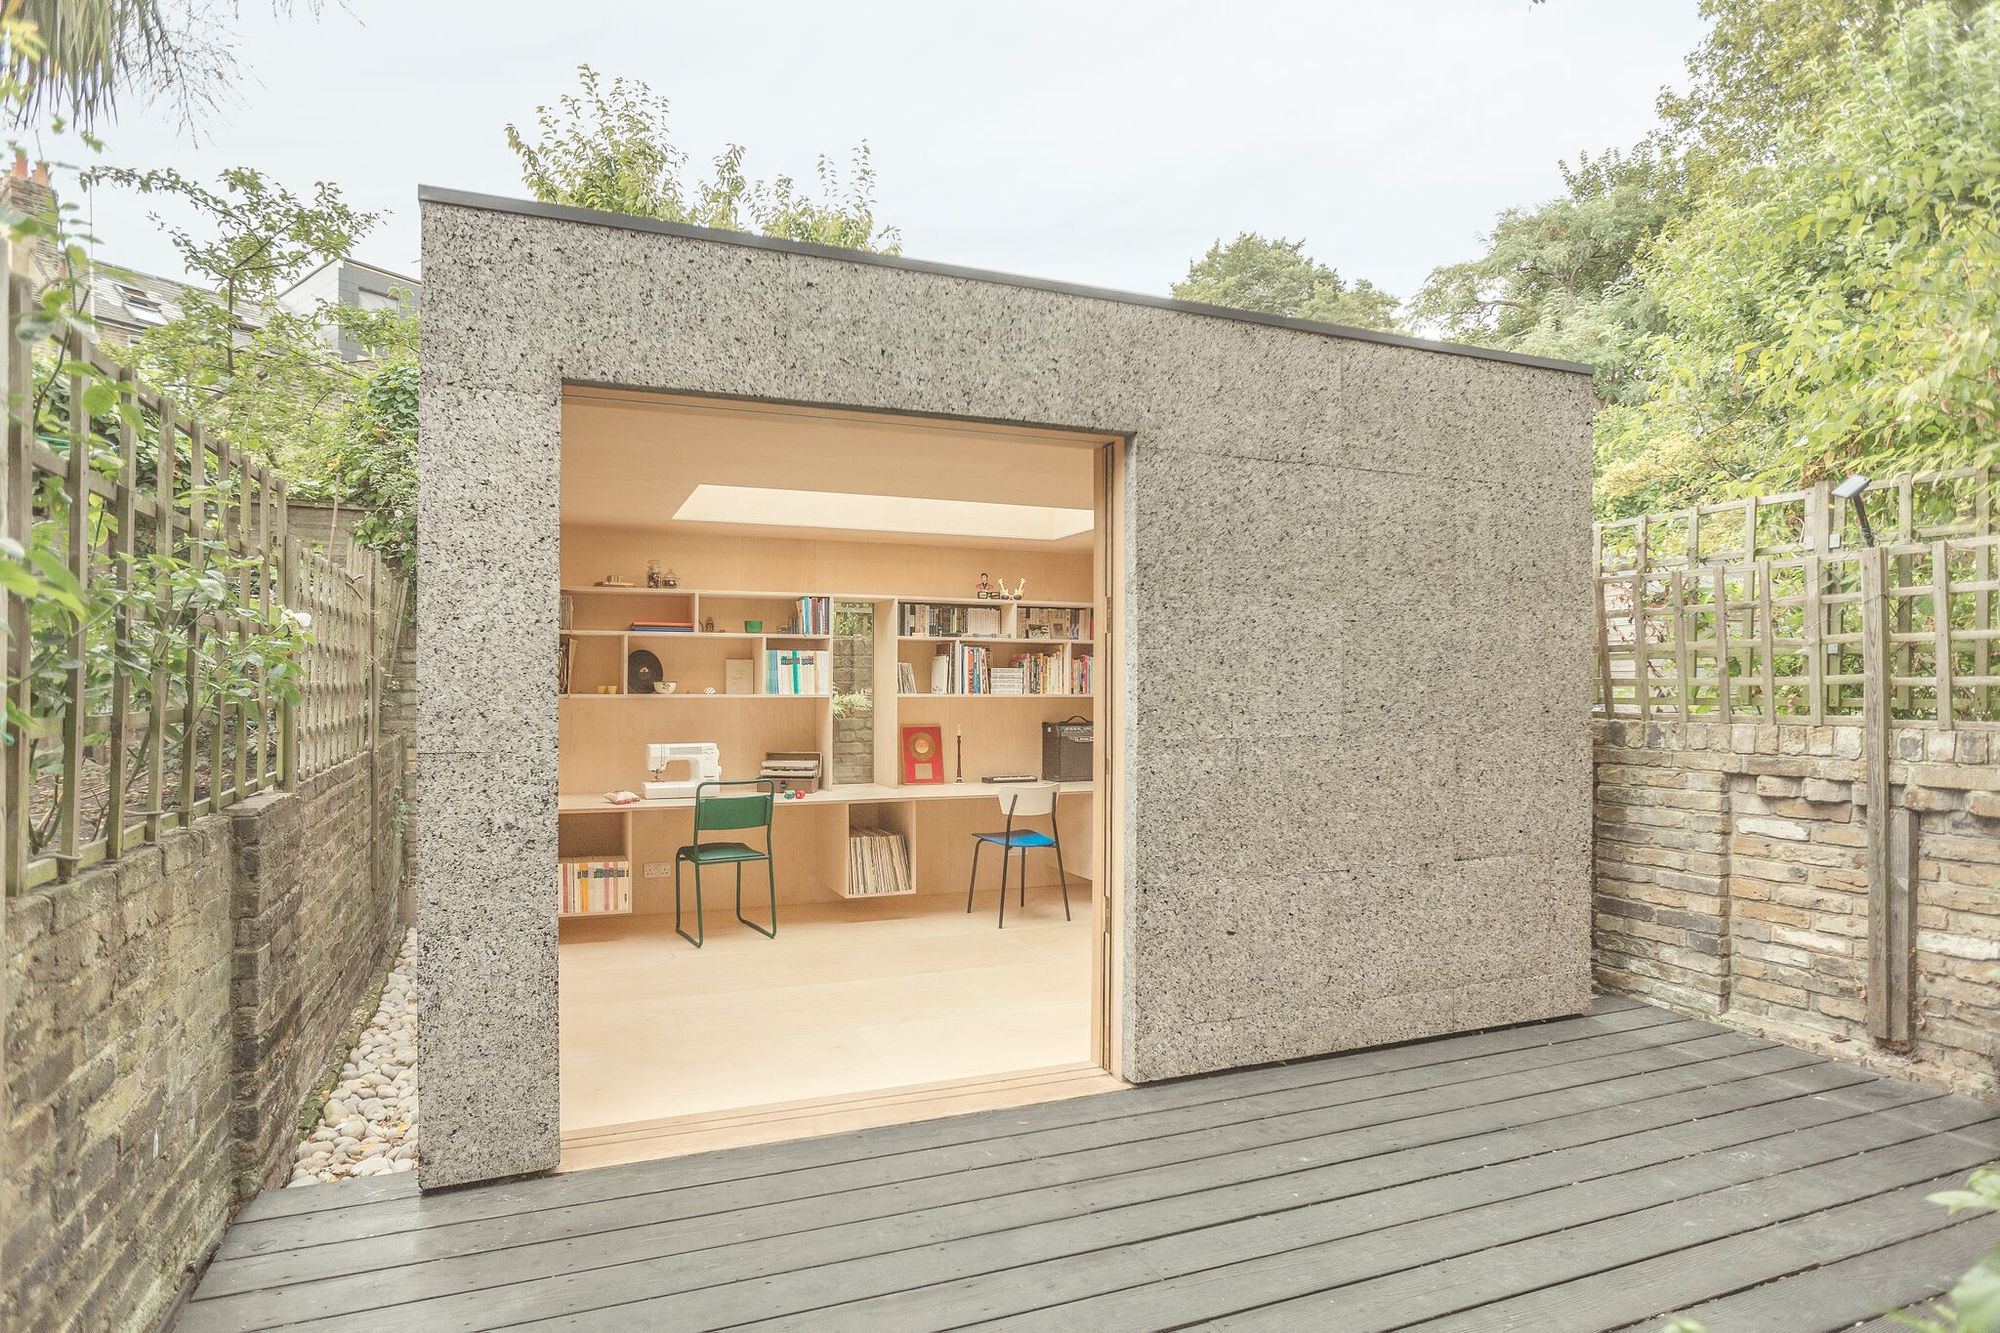 Articles | ArchDaily